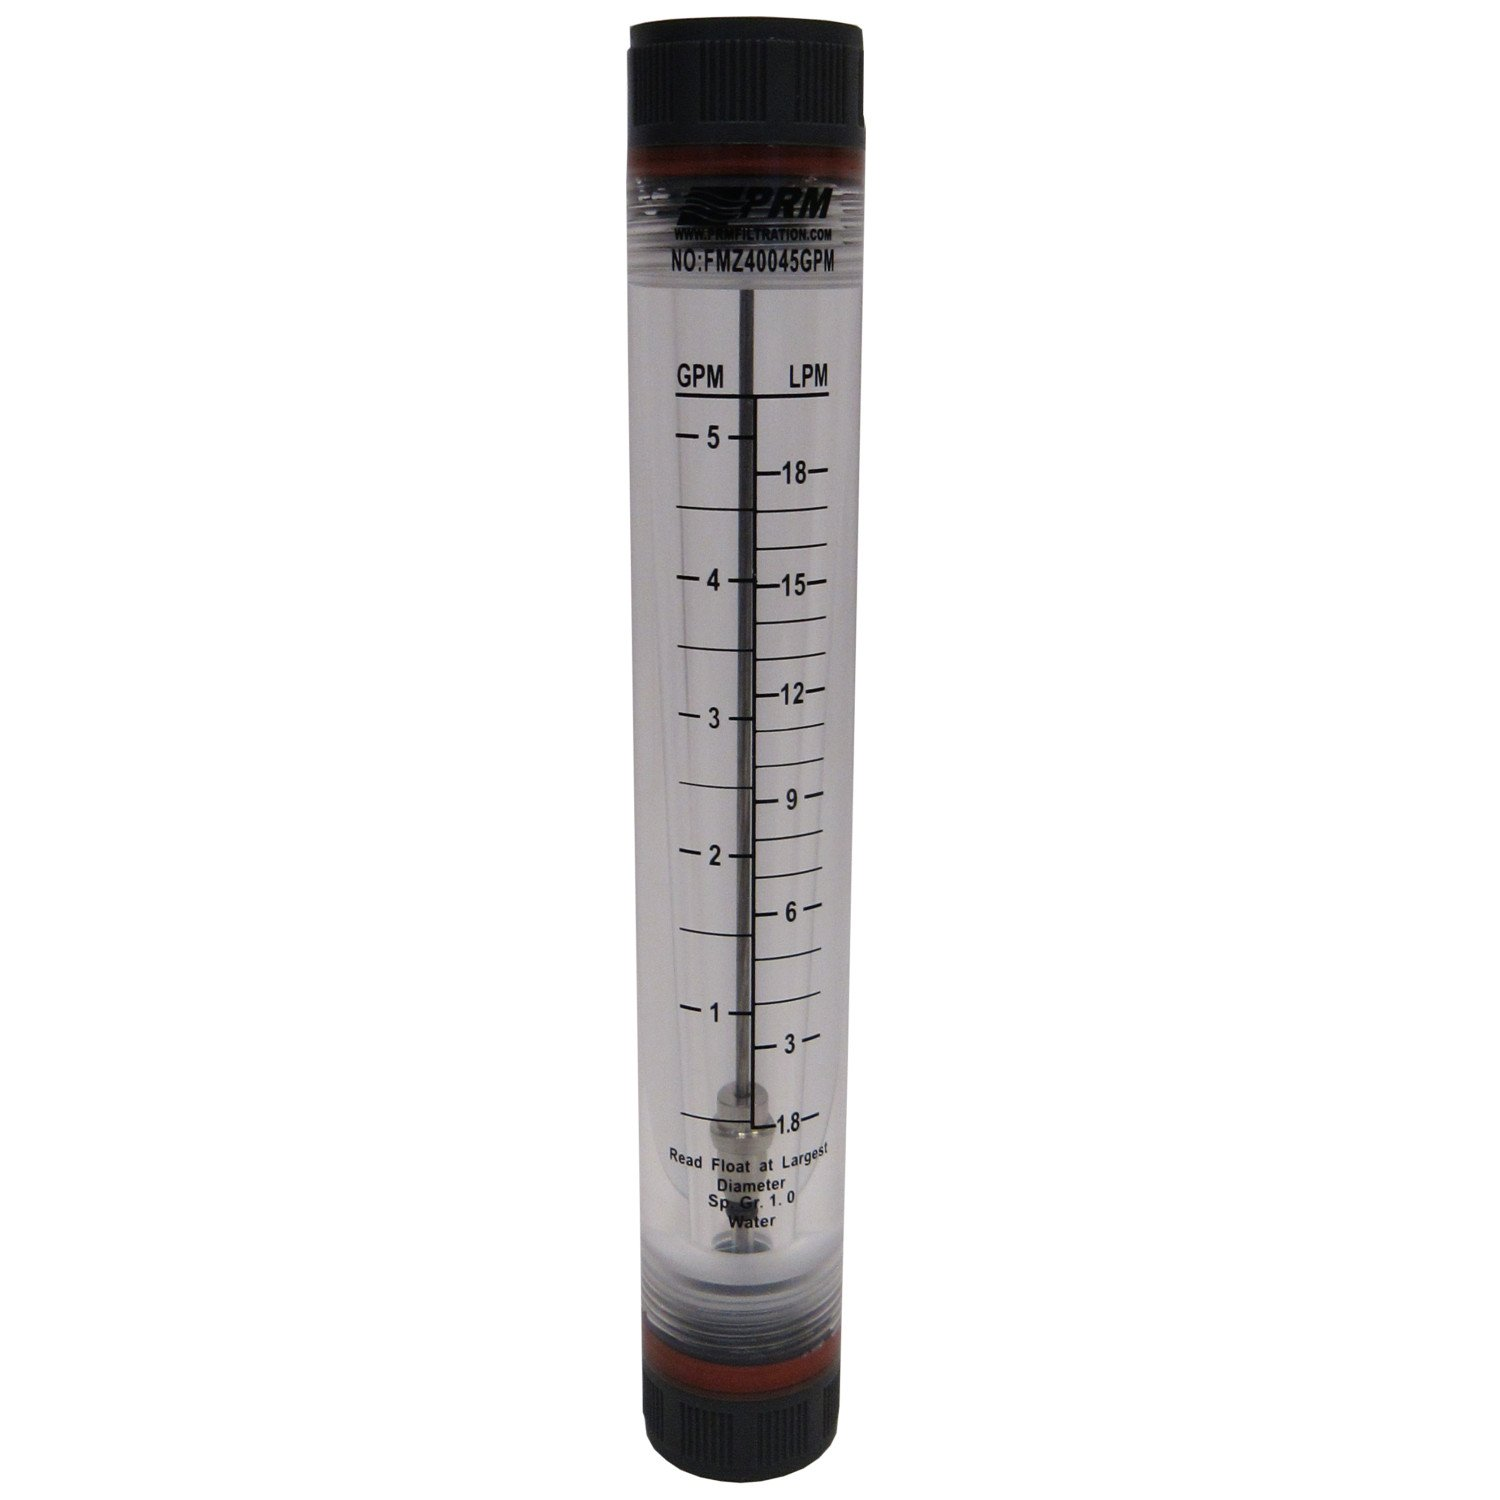 PRM 1-5 GPM Water Rotameter Flow Meter, 1/2 Inch FNPT Connections, UV Resistant